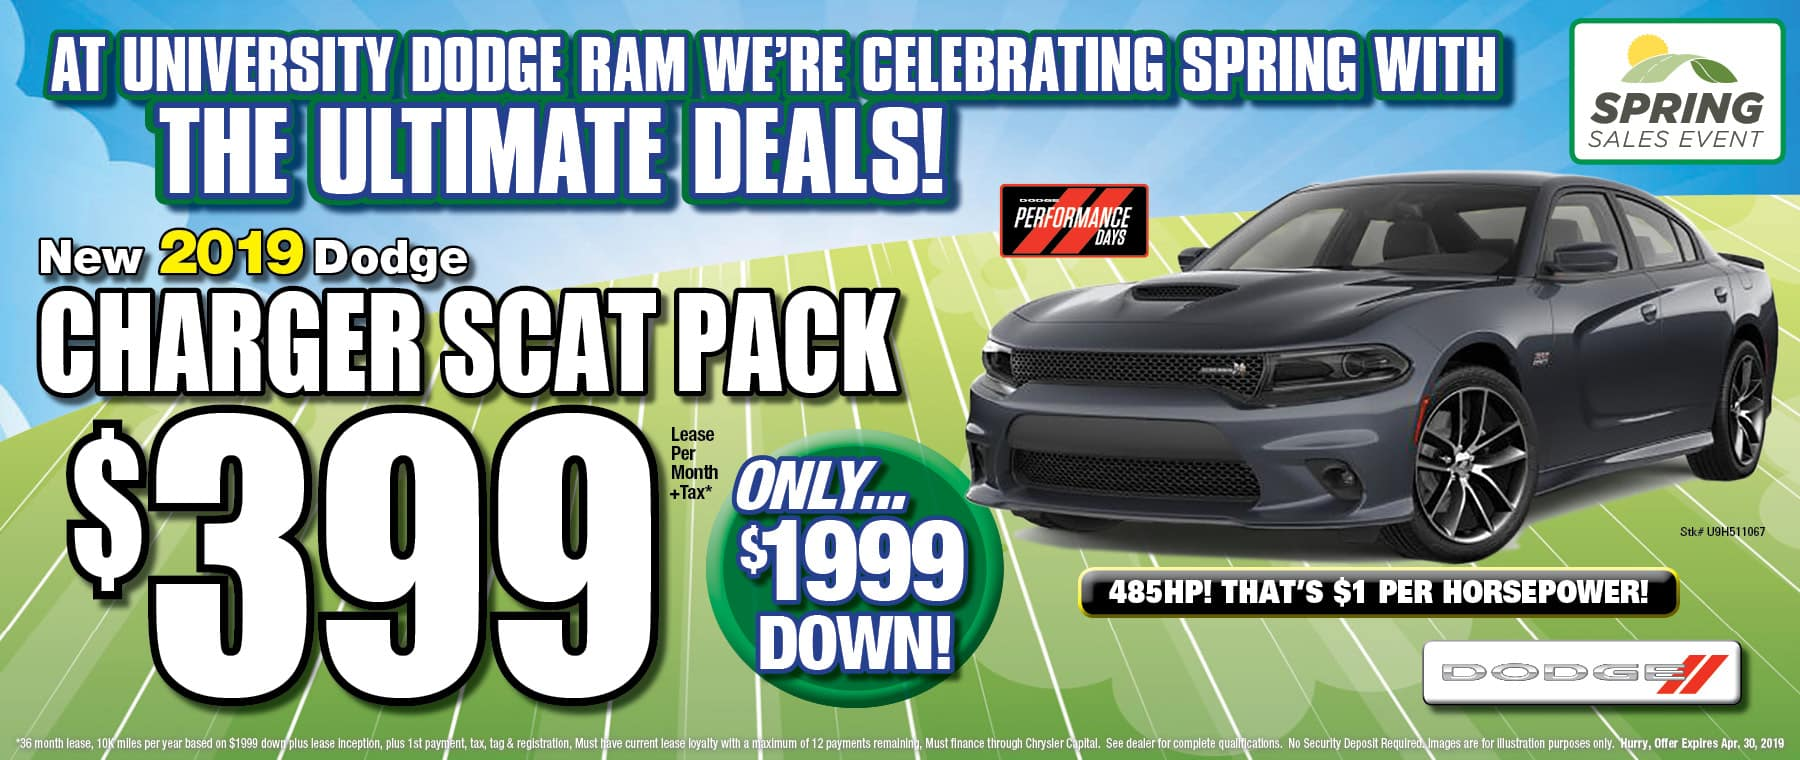 New Dodge Charger Scat Pack!